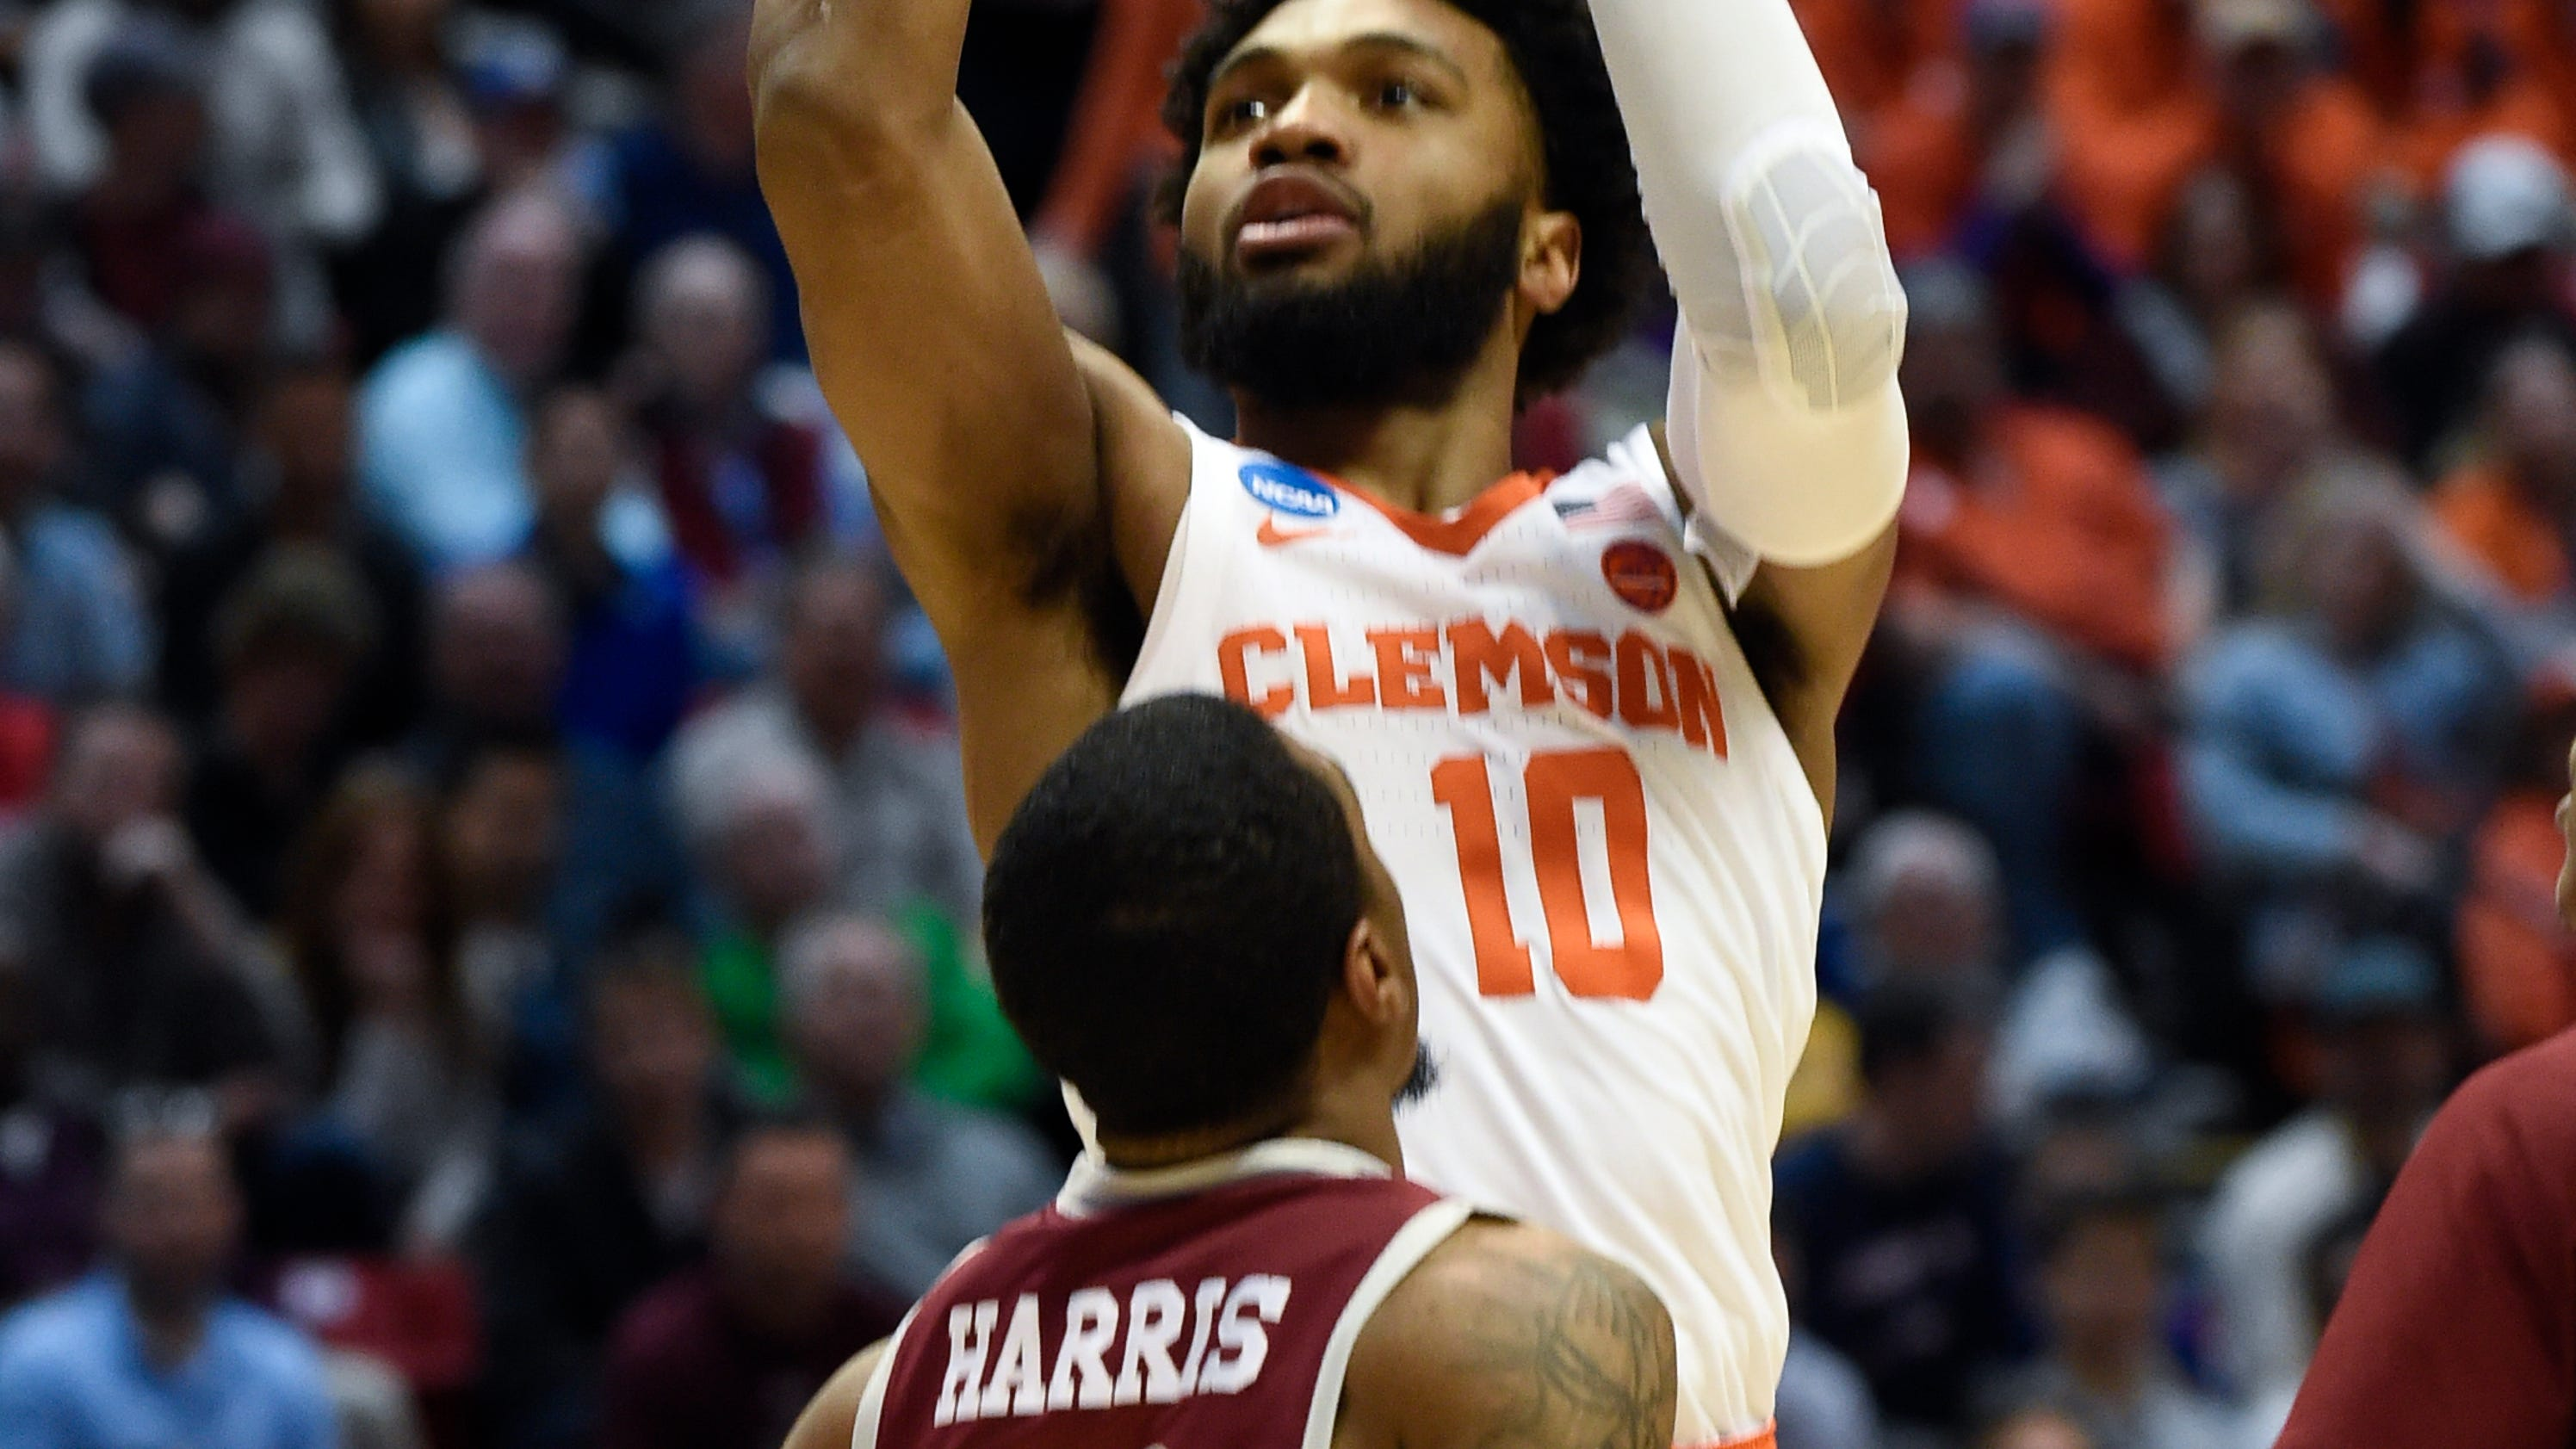 Hot-shooting Clemson Tigers reach 1st Sweet 16 in 21 years